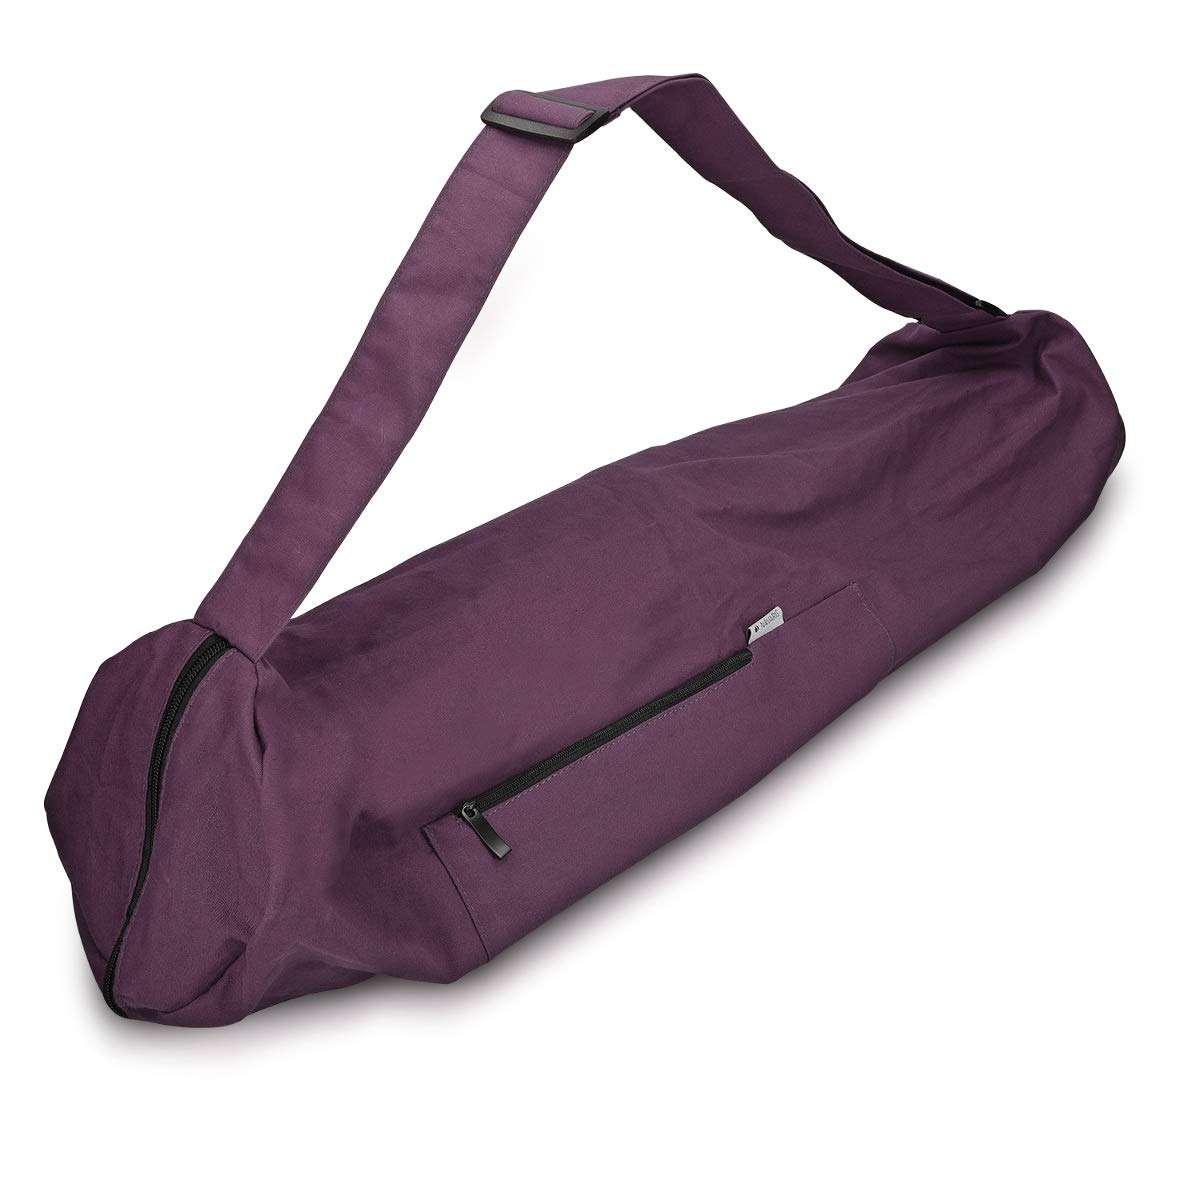 Navaris Yoga Mat Bag - Cotton Yoga Bag with Zipper Pocket and Closure 28.3 x 11.4 inches (72 x 29cm) Large Tote Bag KW-Commerce 44963.22_m000579